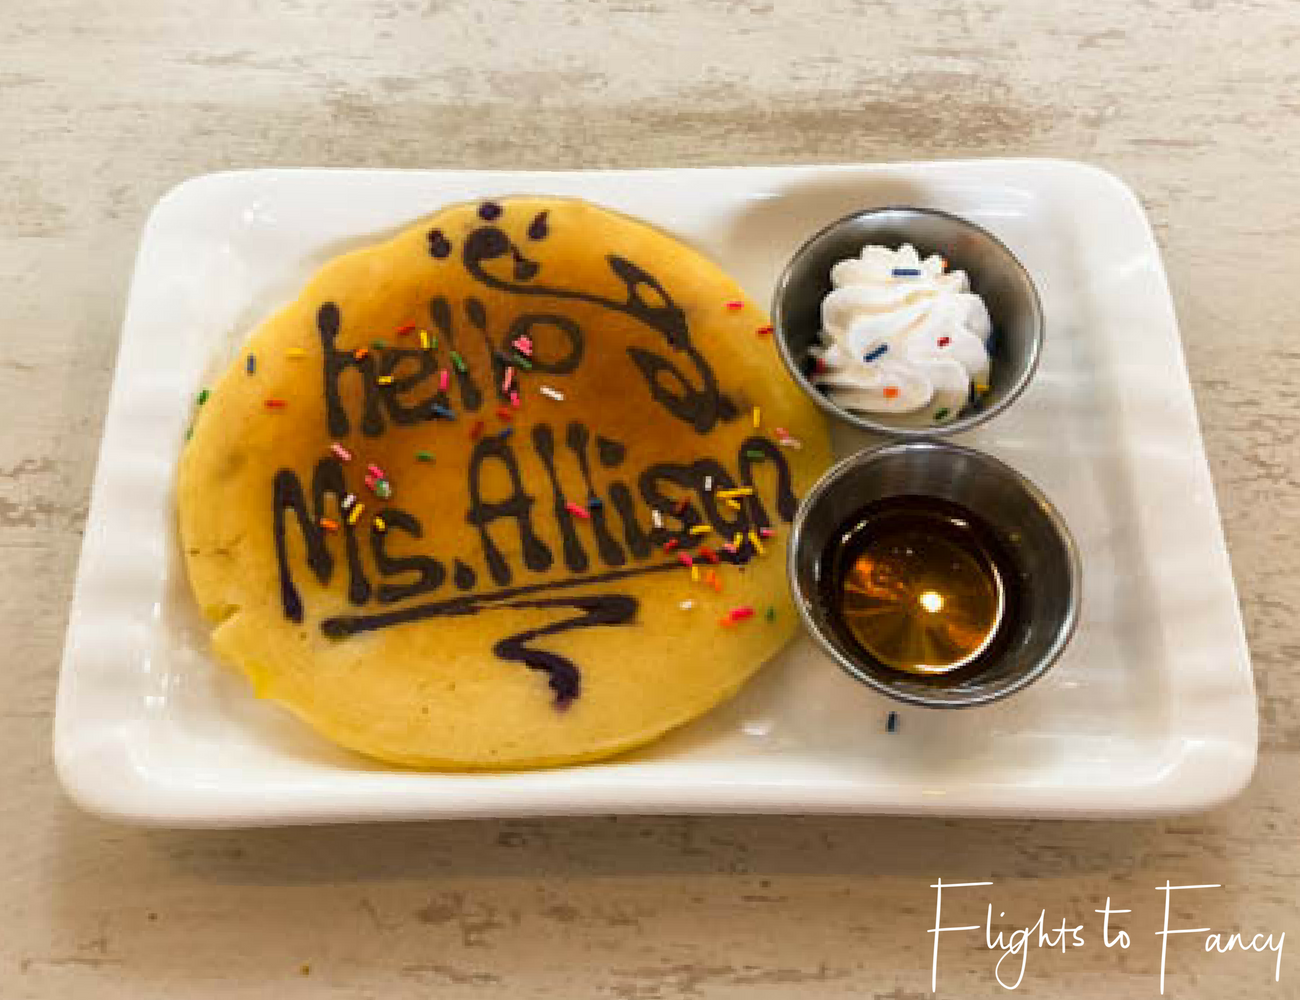 Flights To Fancy at Cha Cha's Boracay - Personalised Pancake